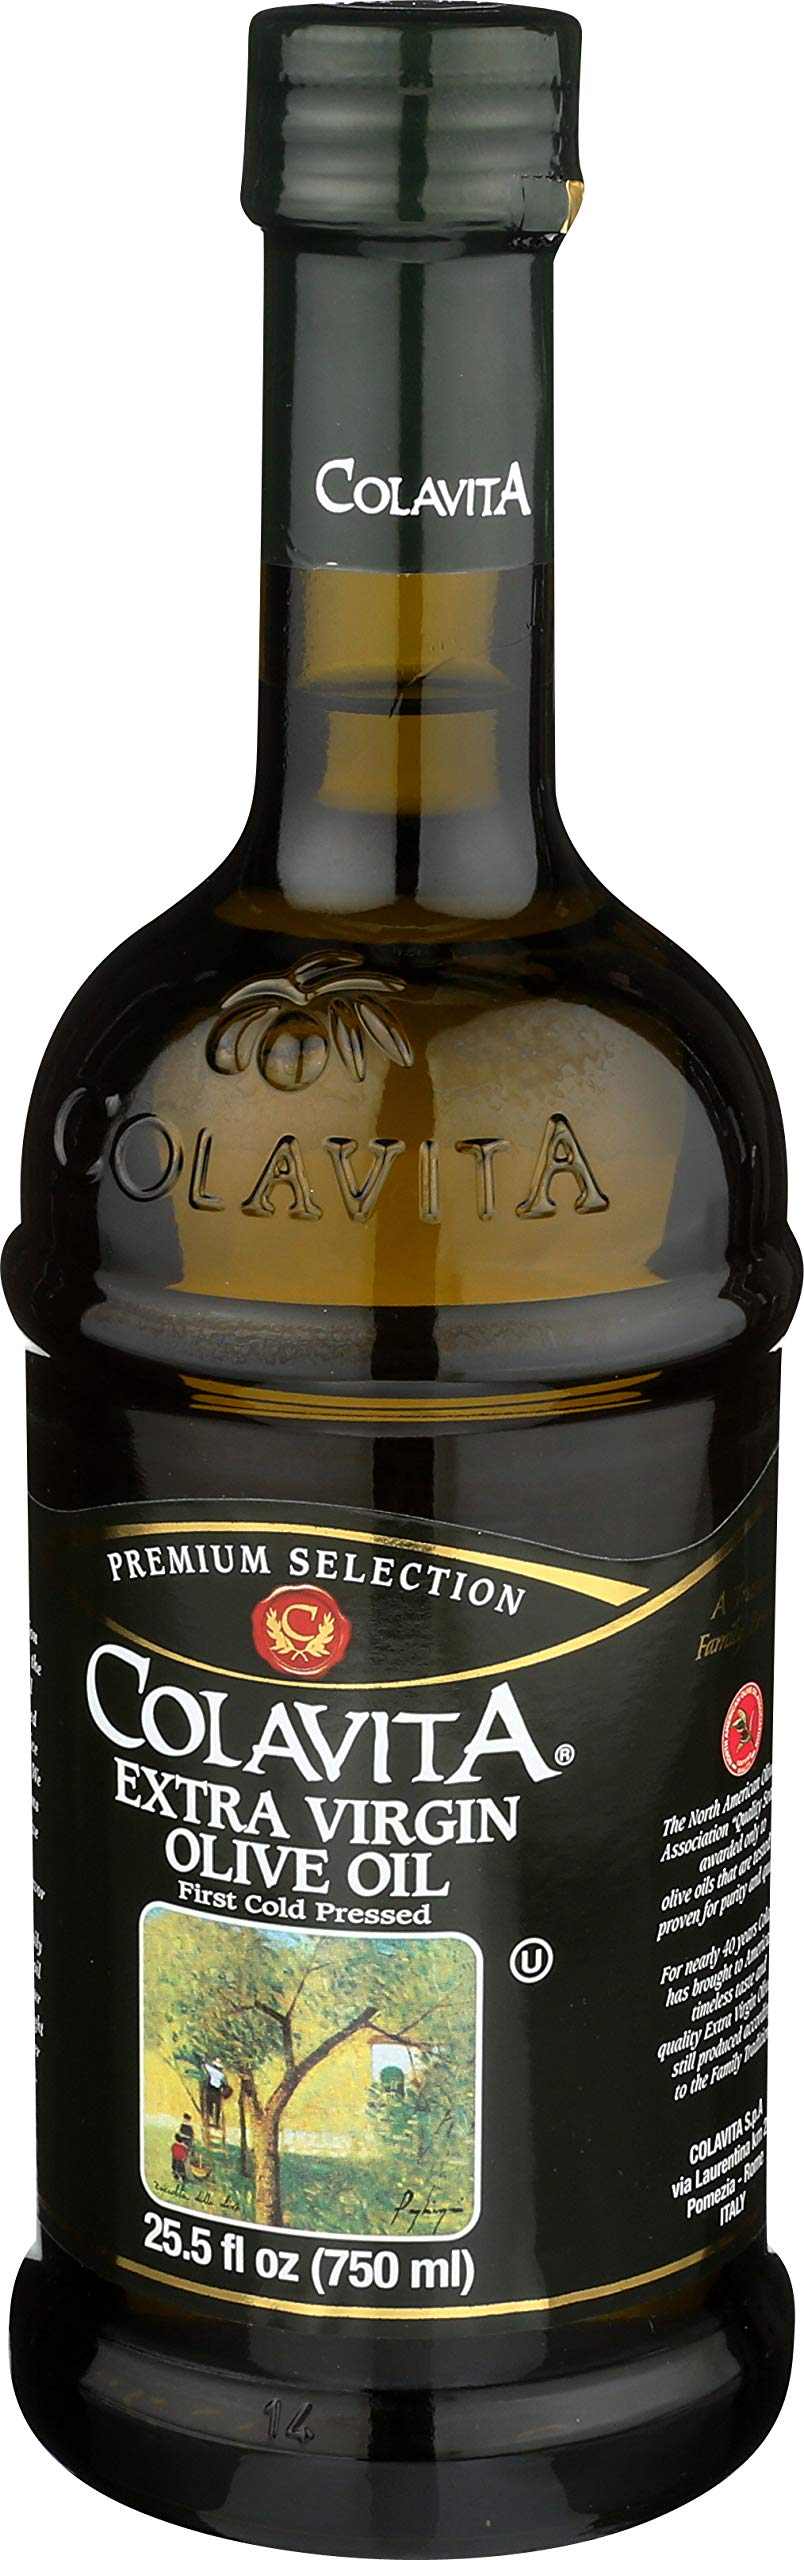 Colavita Extra Virgin Olive Oil, First Cold Pressed, 25.5 fl. oz., Glass Bottle by Colavita (Image #9)